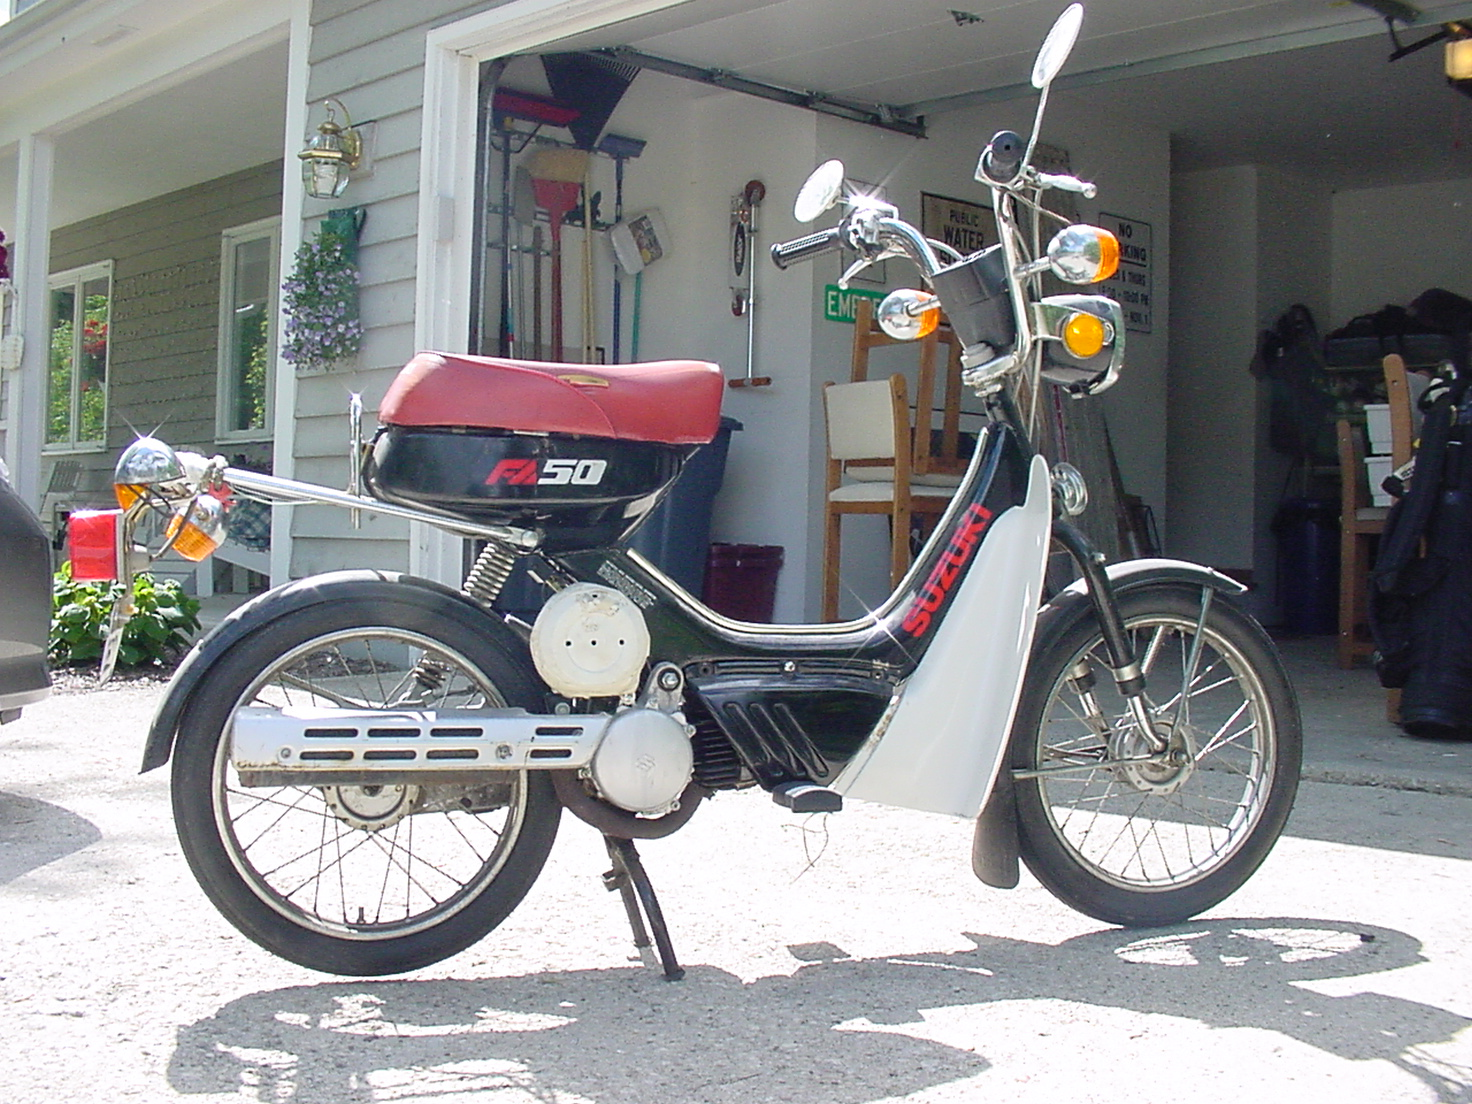 Suzuki Fz50 Aftermarket Parts Wiring Diagram Any Advice On A Fa50 Moped Army